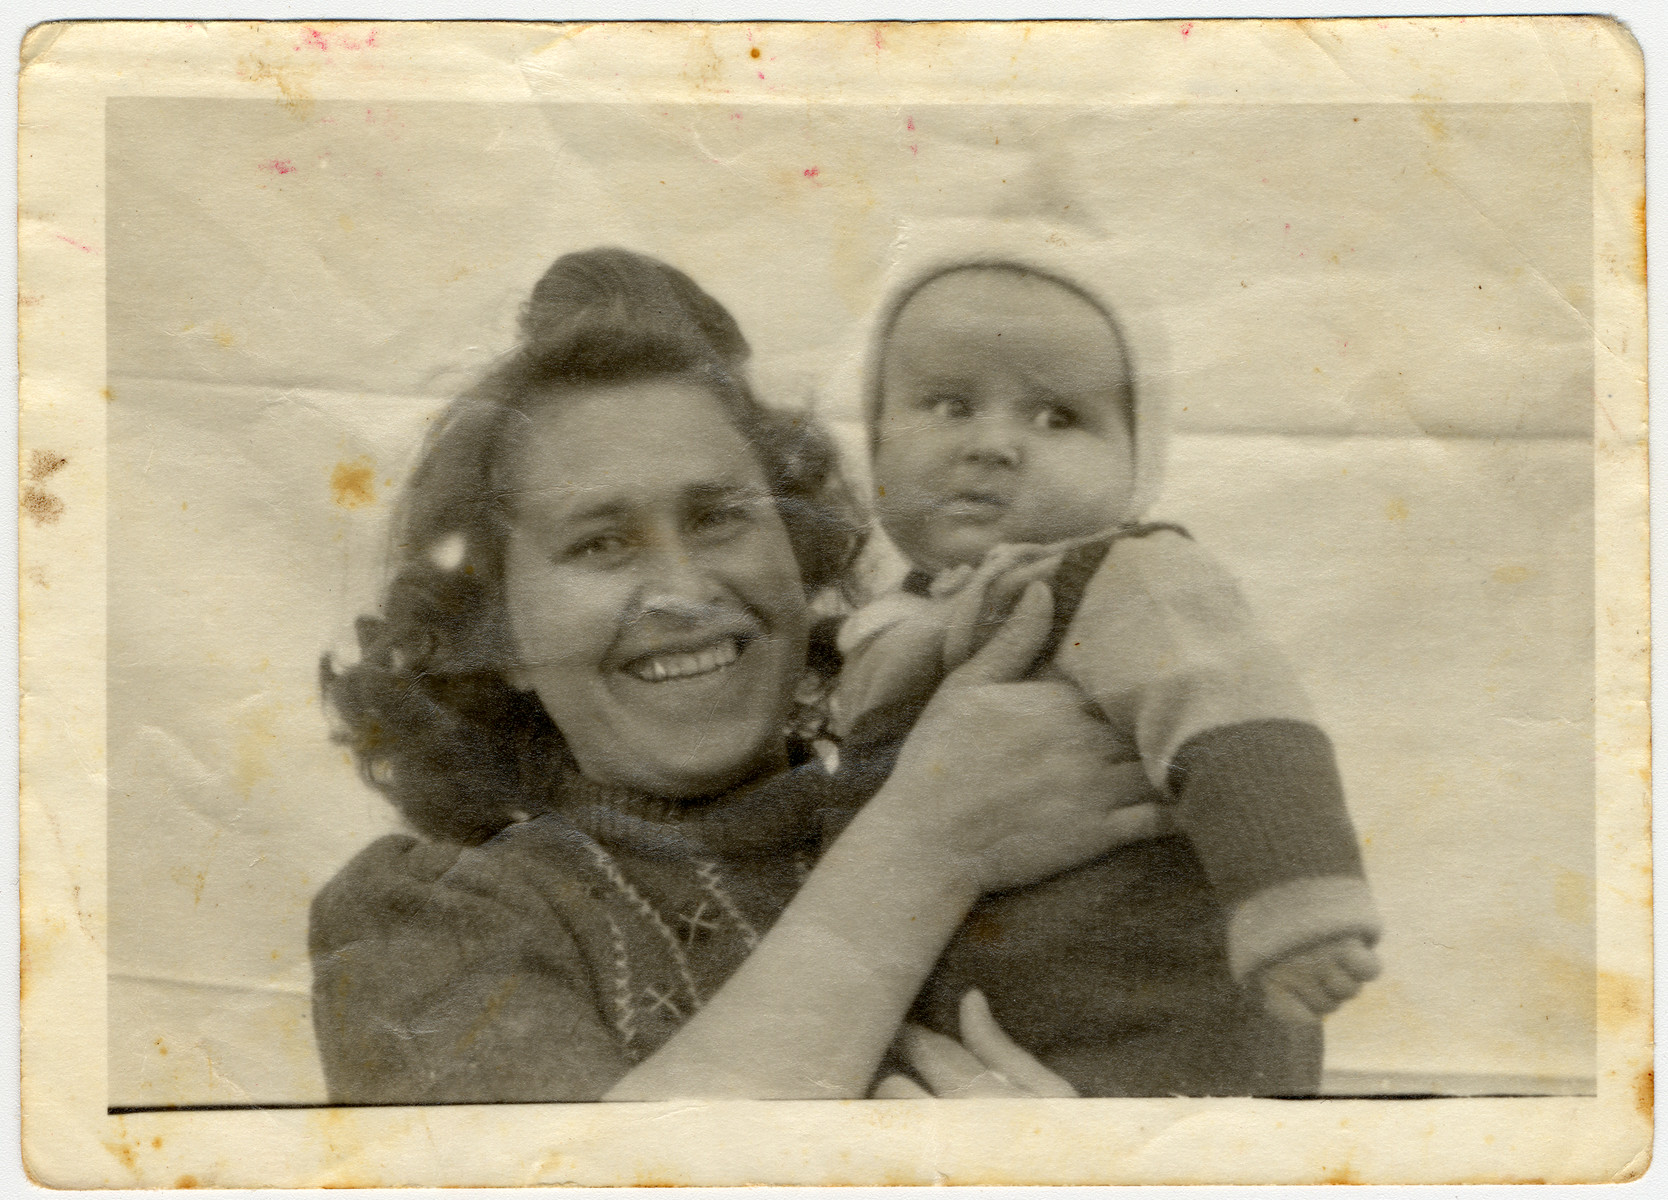 Close-up portrait of a mother and her newborn son in the Wilhelmshaven displaced persons' camp where they were sent after the forced return of the Exodus passengers.  Pictured are Malka Herskovitz and her son Avi.